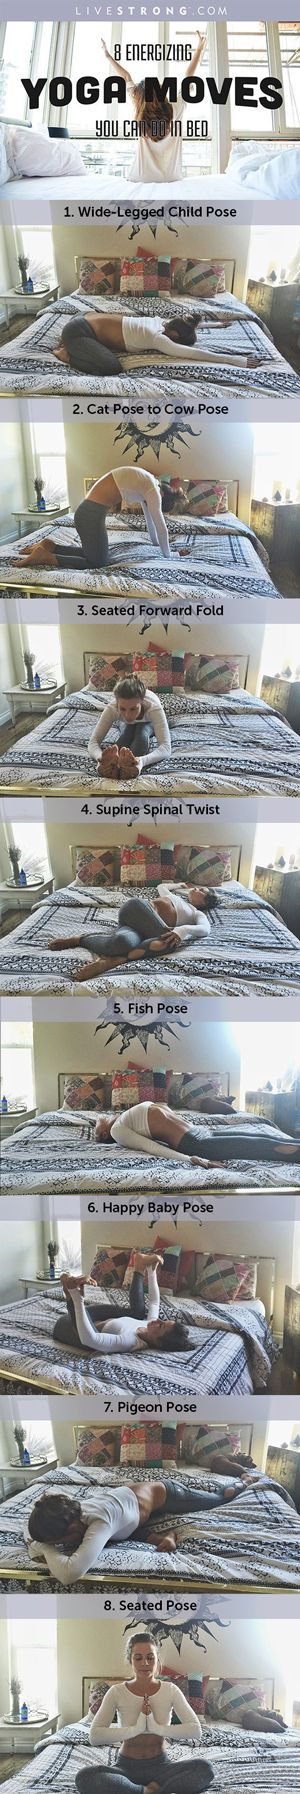 Yoga Poses On the Bed